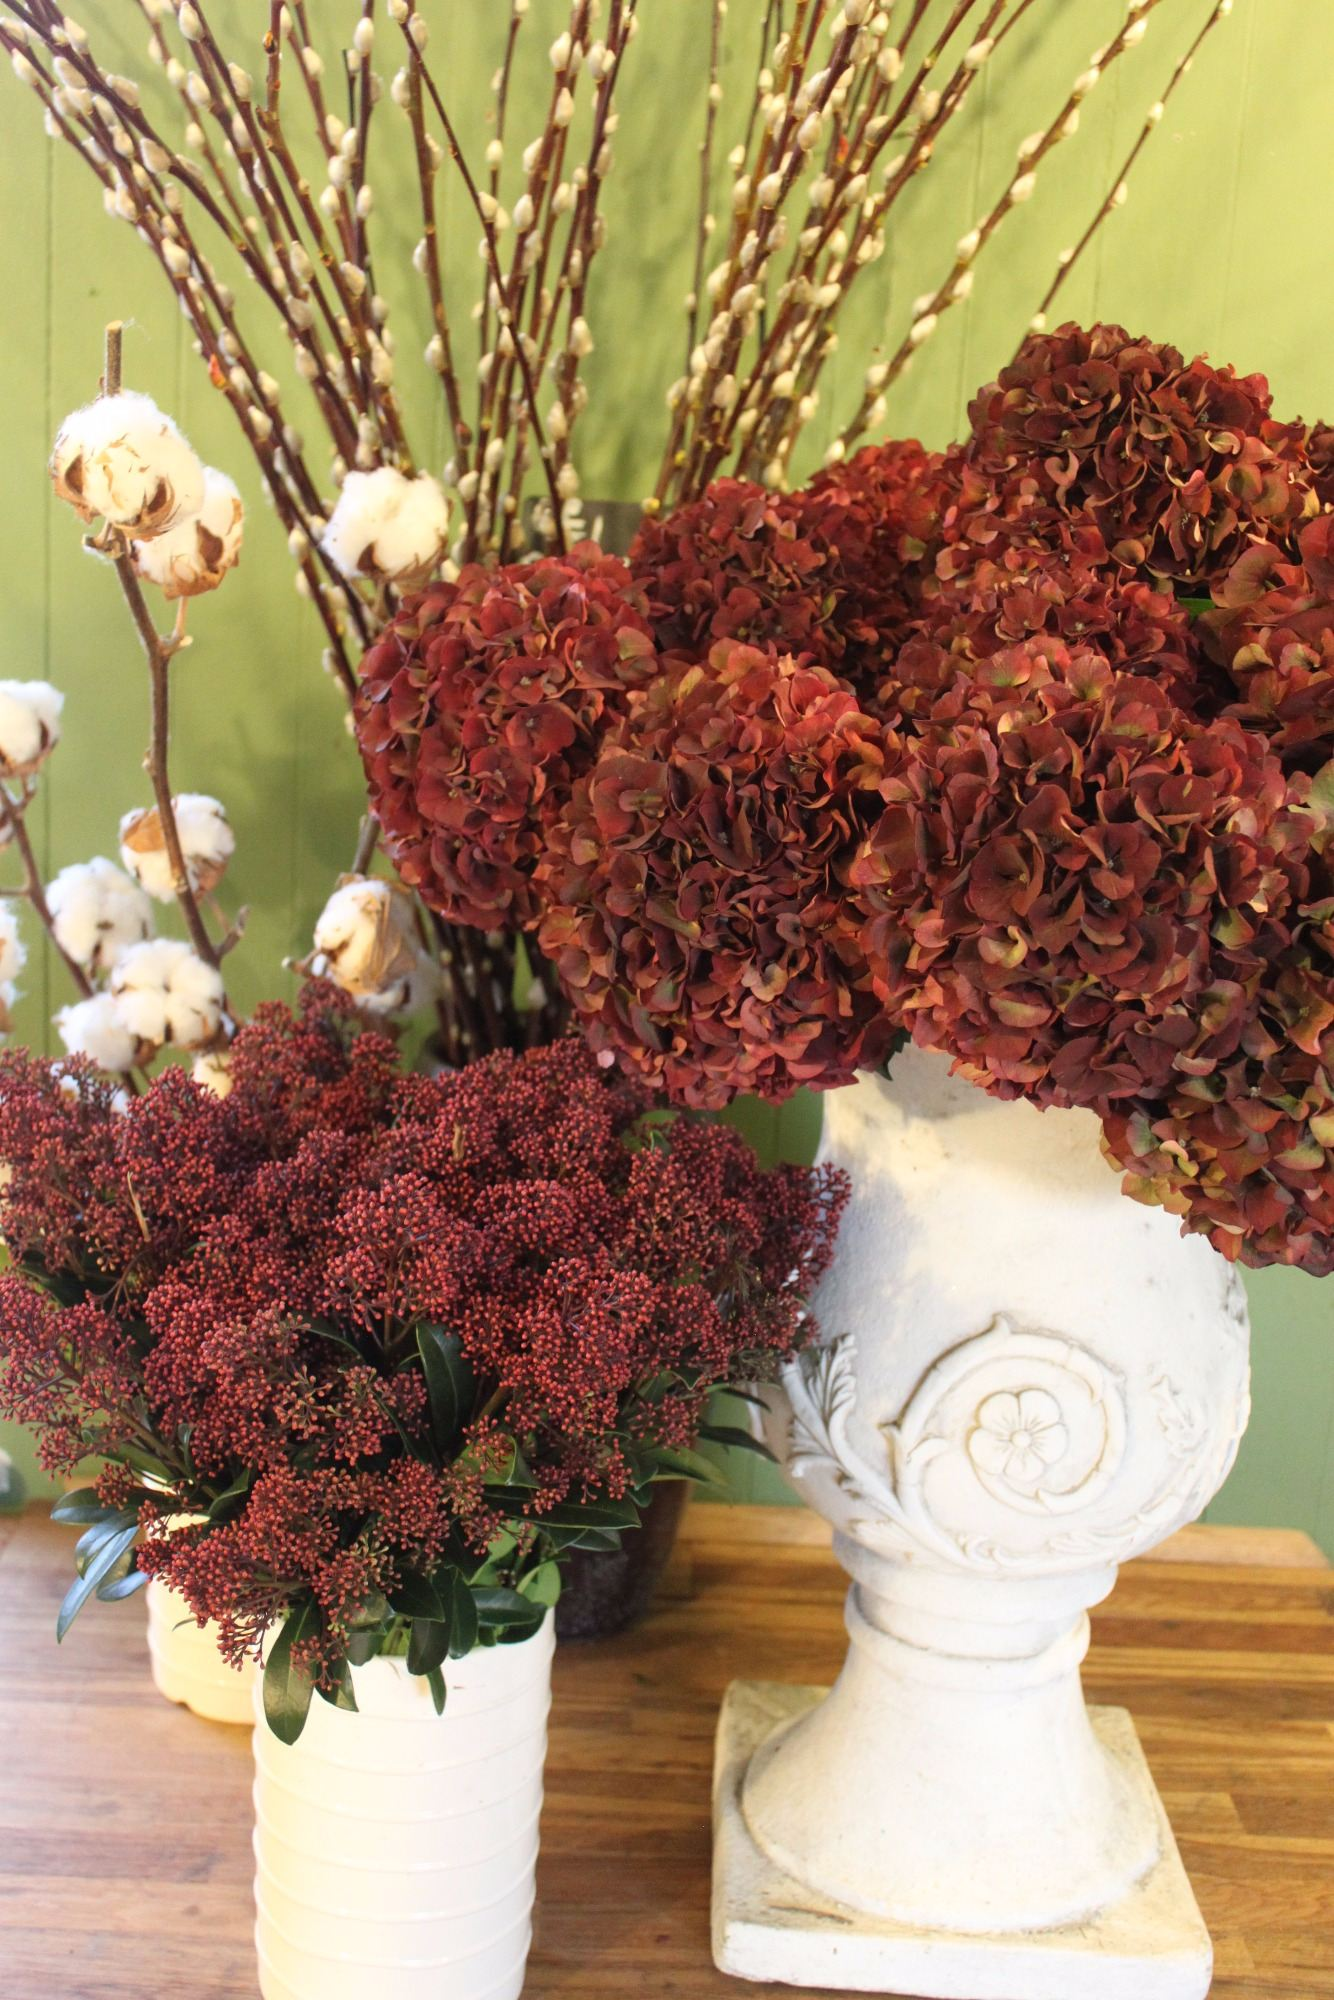 Burgundy hydrangeas at Christmas